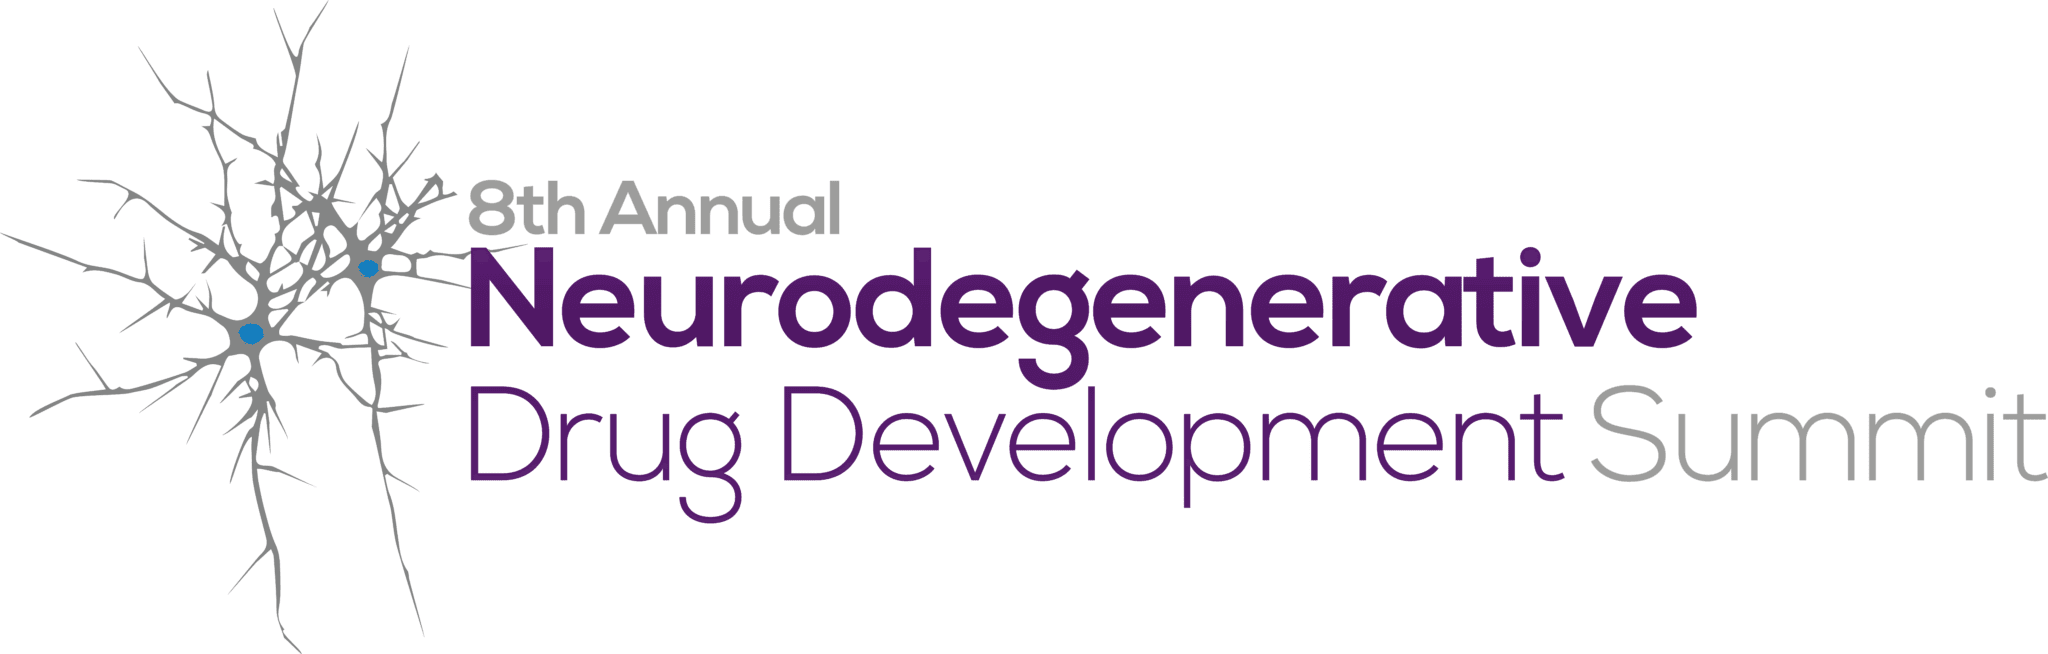 neurodegenerative drug development